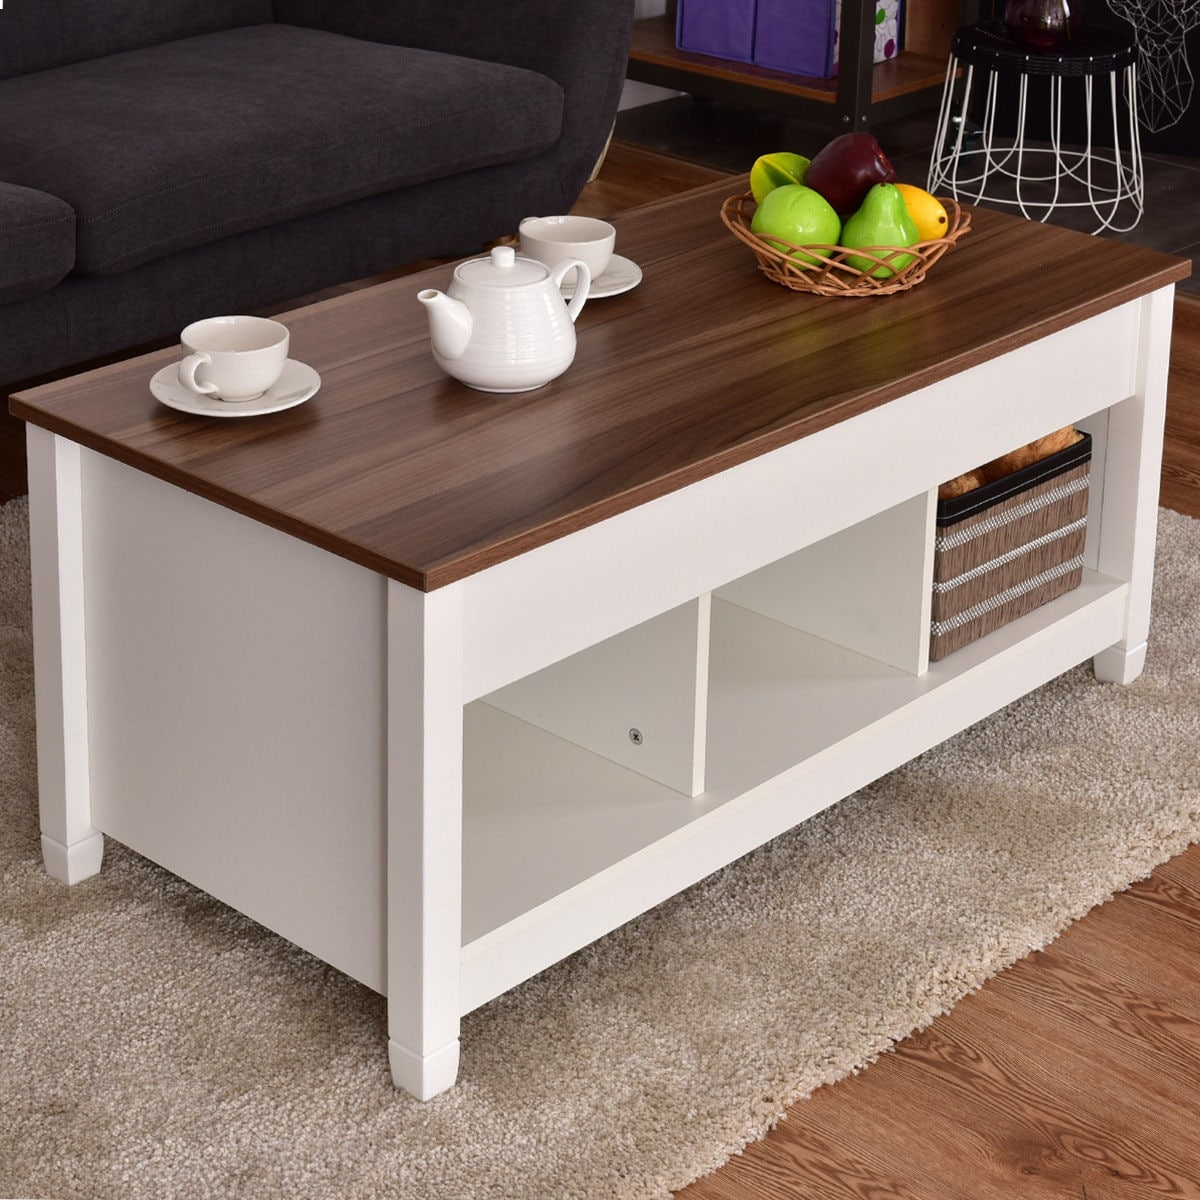 Shop Costway Lift Top Coffee Table w/ Hidden Compartment and Storage Shelves Modern Furniture - Free Shipping Today - Overstock.com - 18298805 & Shop Costway Lift Top Coffee Table w/ Hidden Compartment and Storage ...